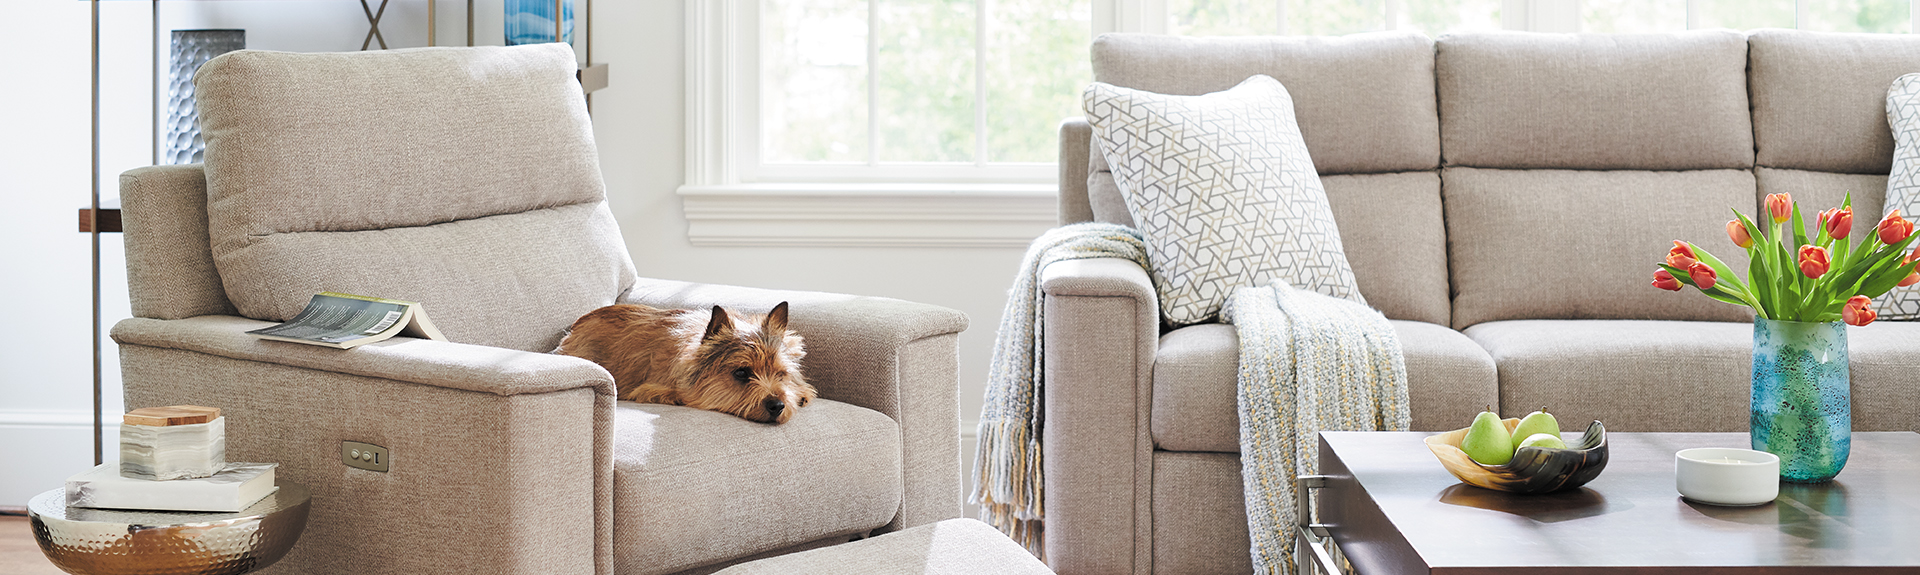 Furniture-Buying-Guide-Dog